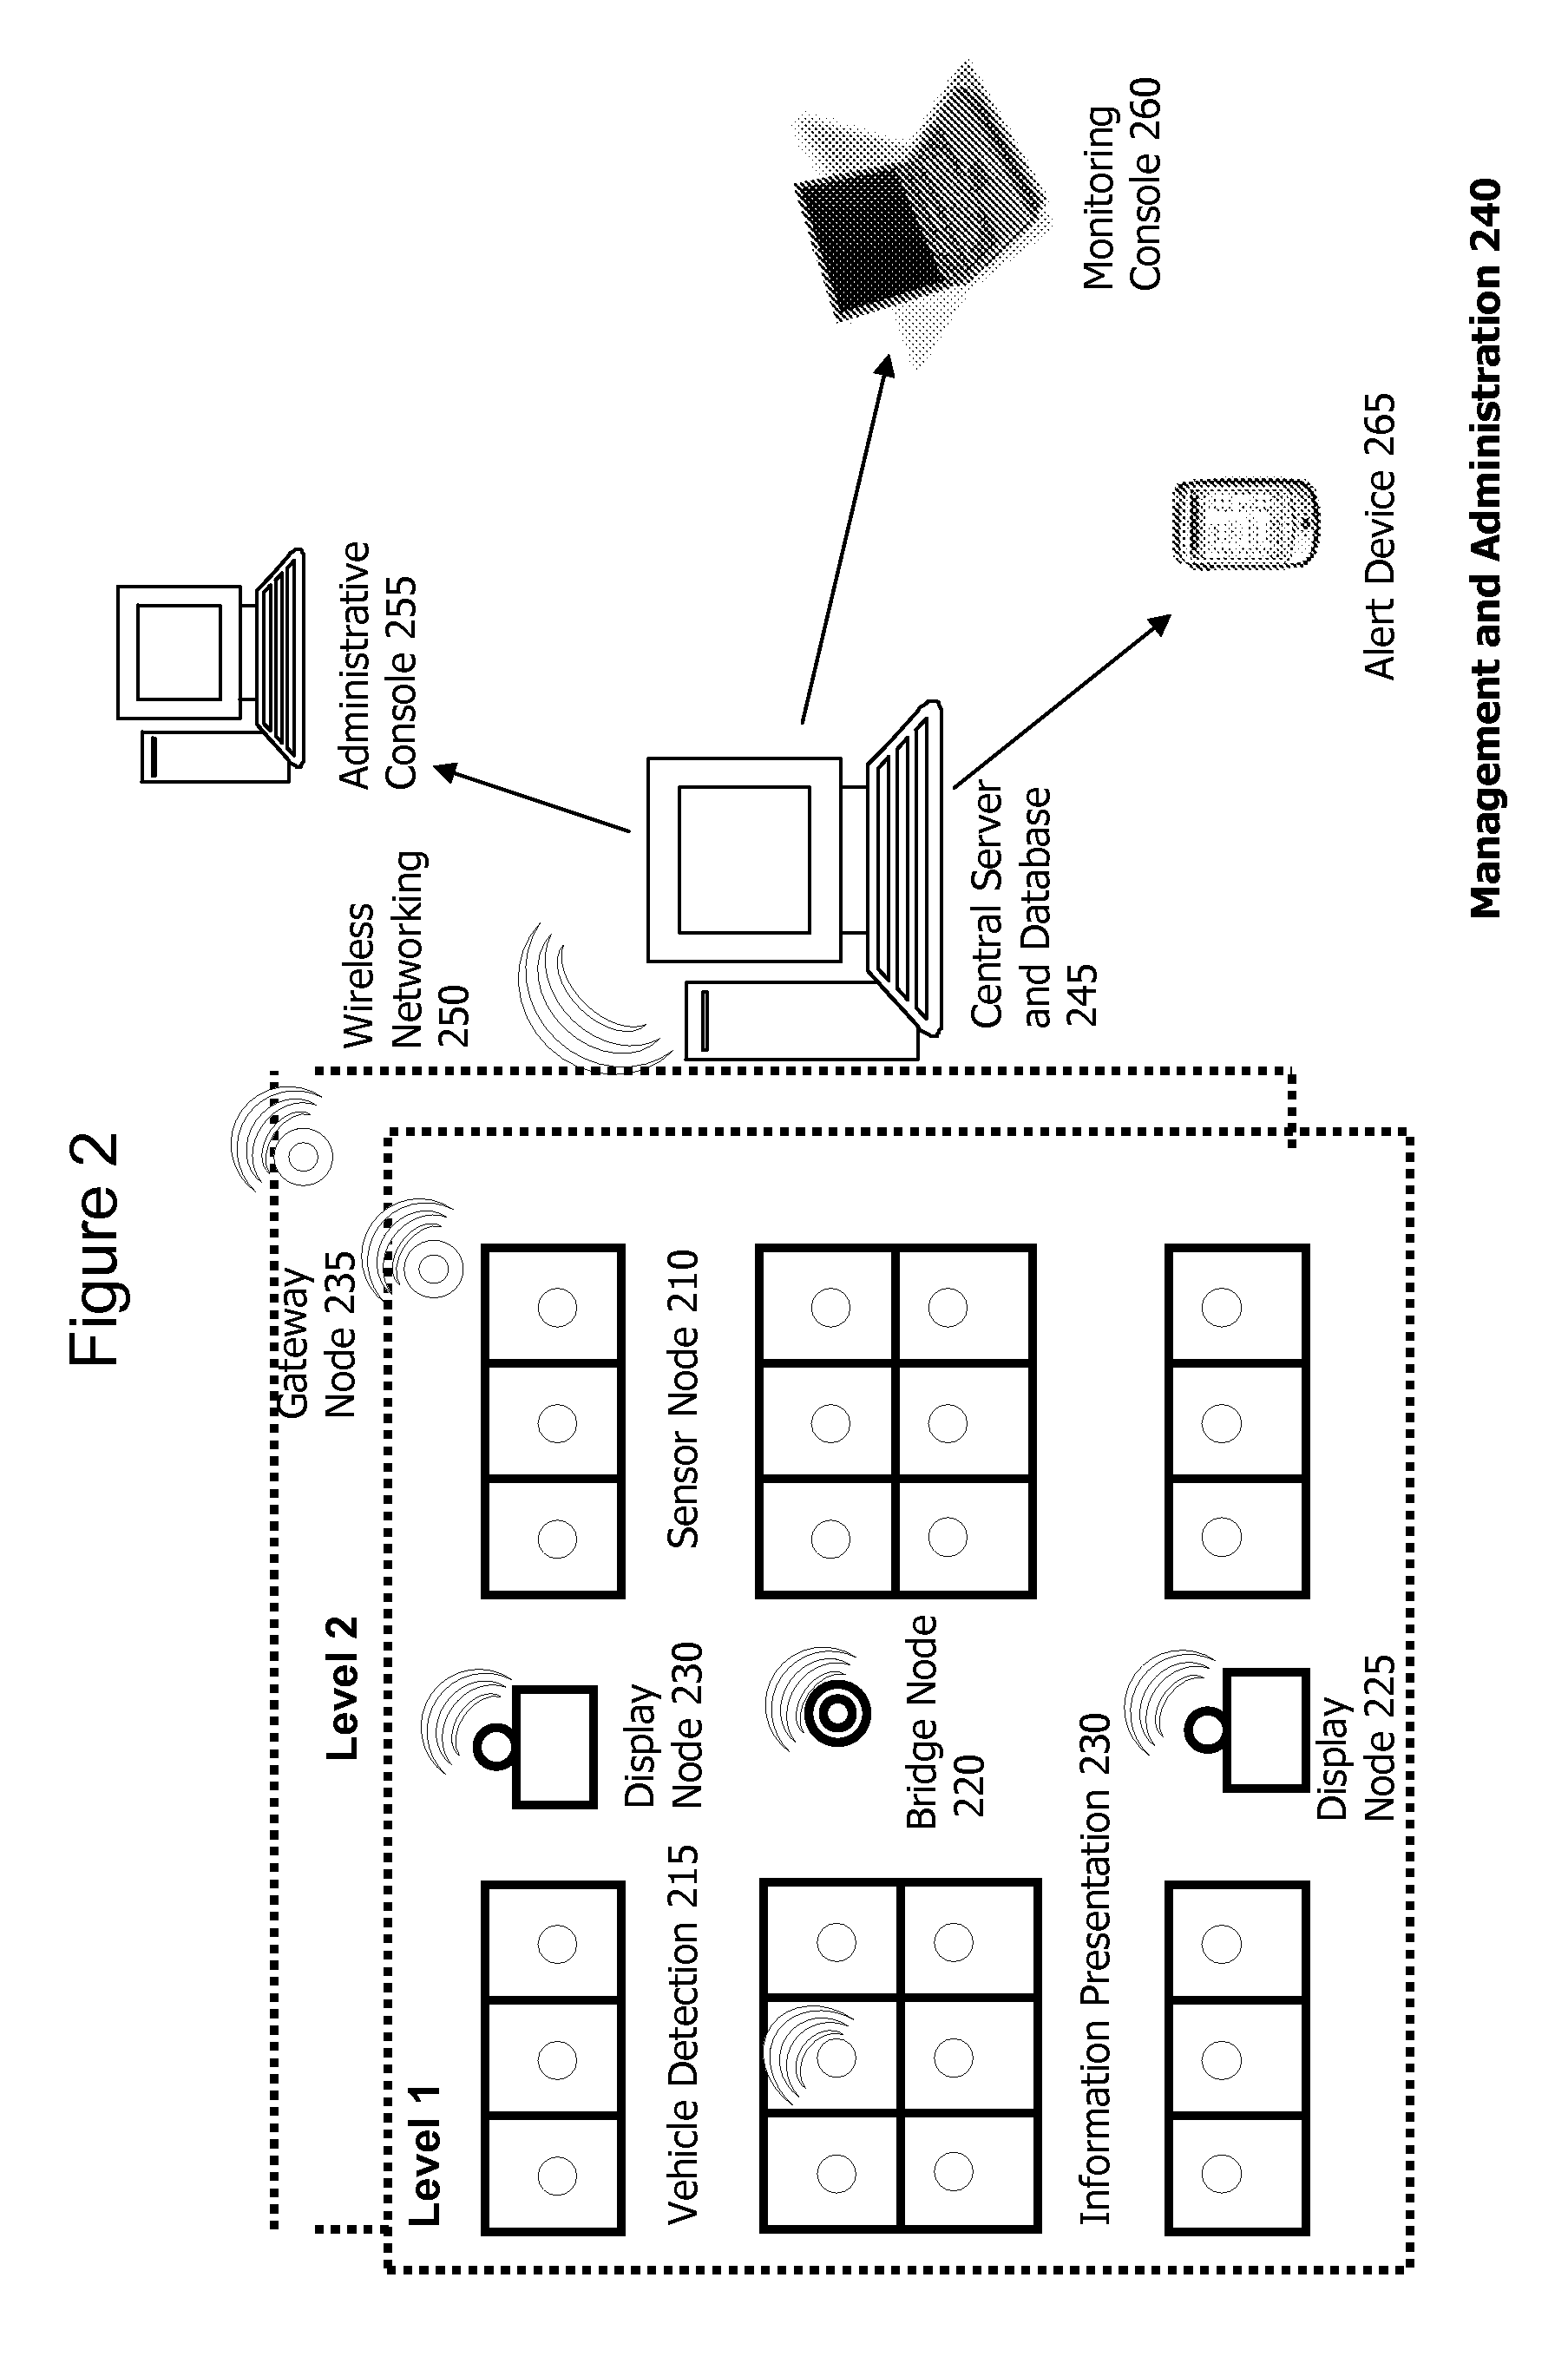 application of wireless sensor network to parking guidance system